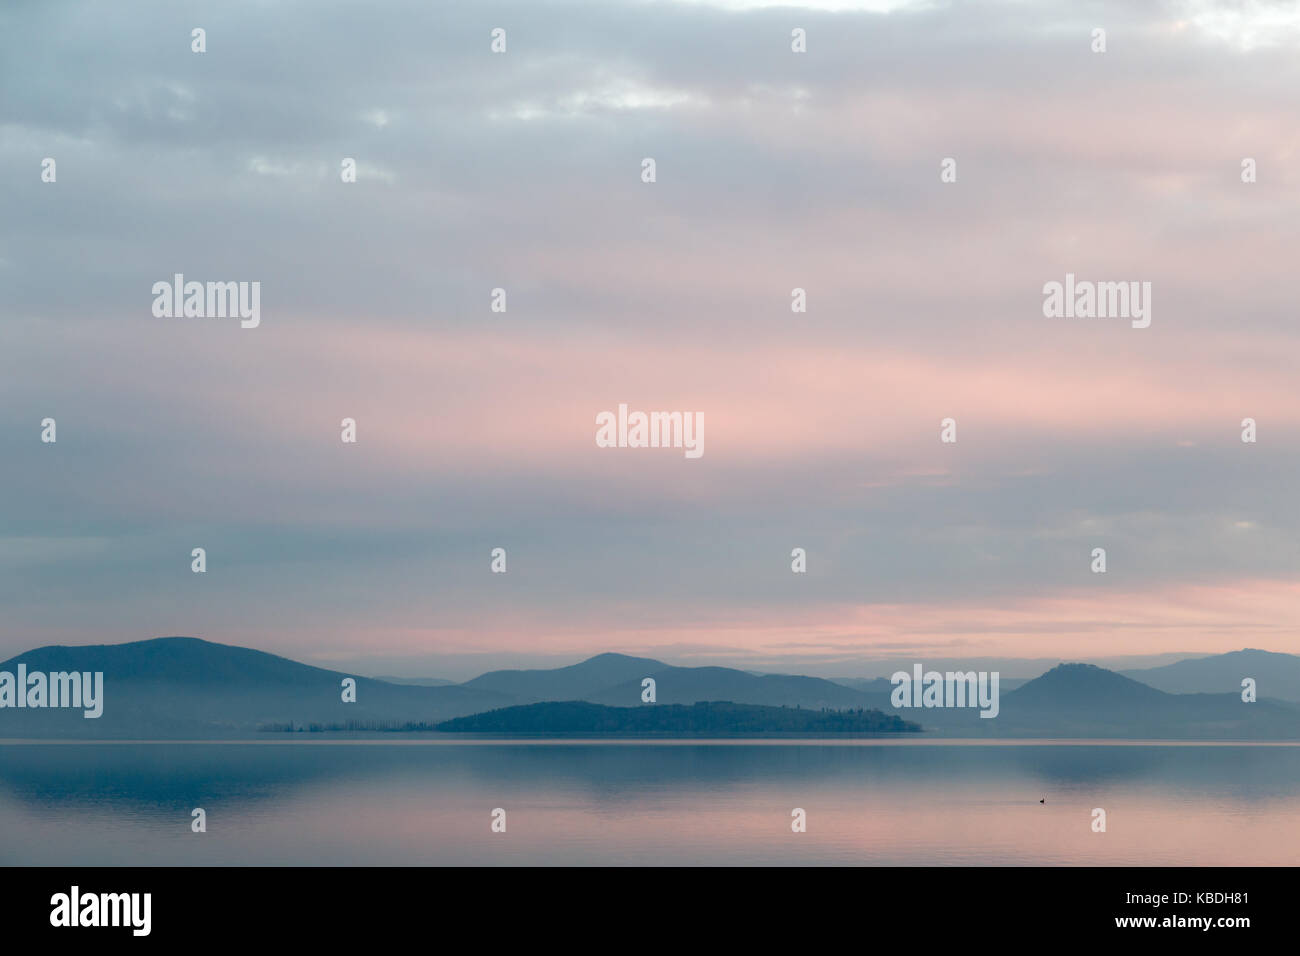 A lake at dusk, with beautiful, warm tones in the sky and water - Stock Image